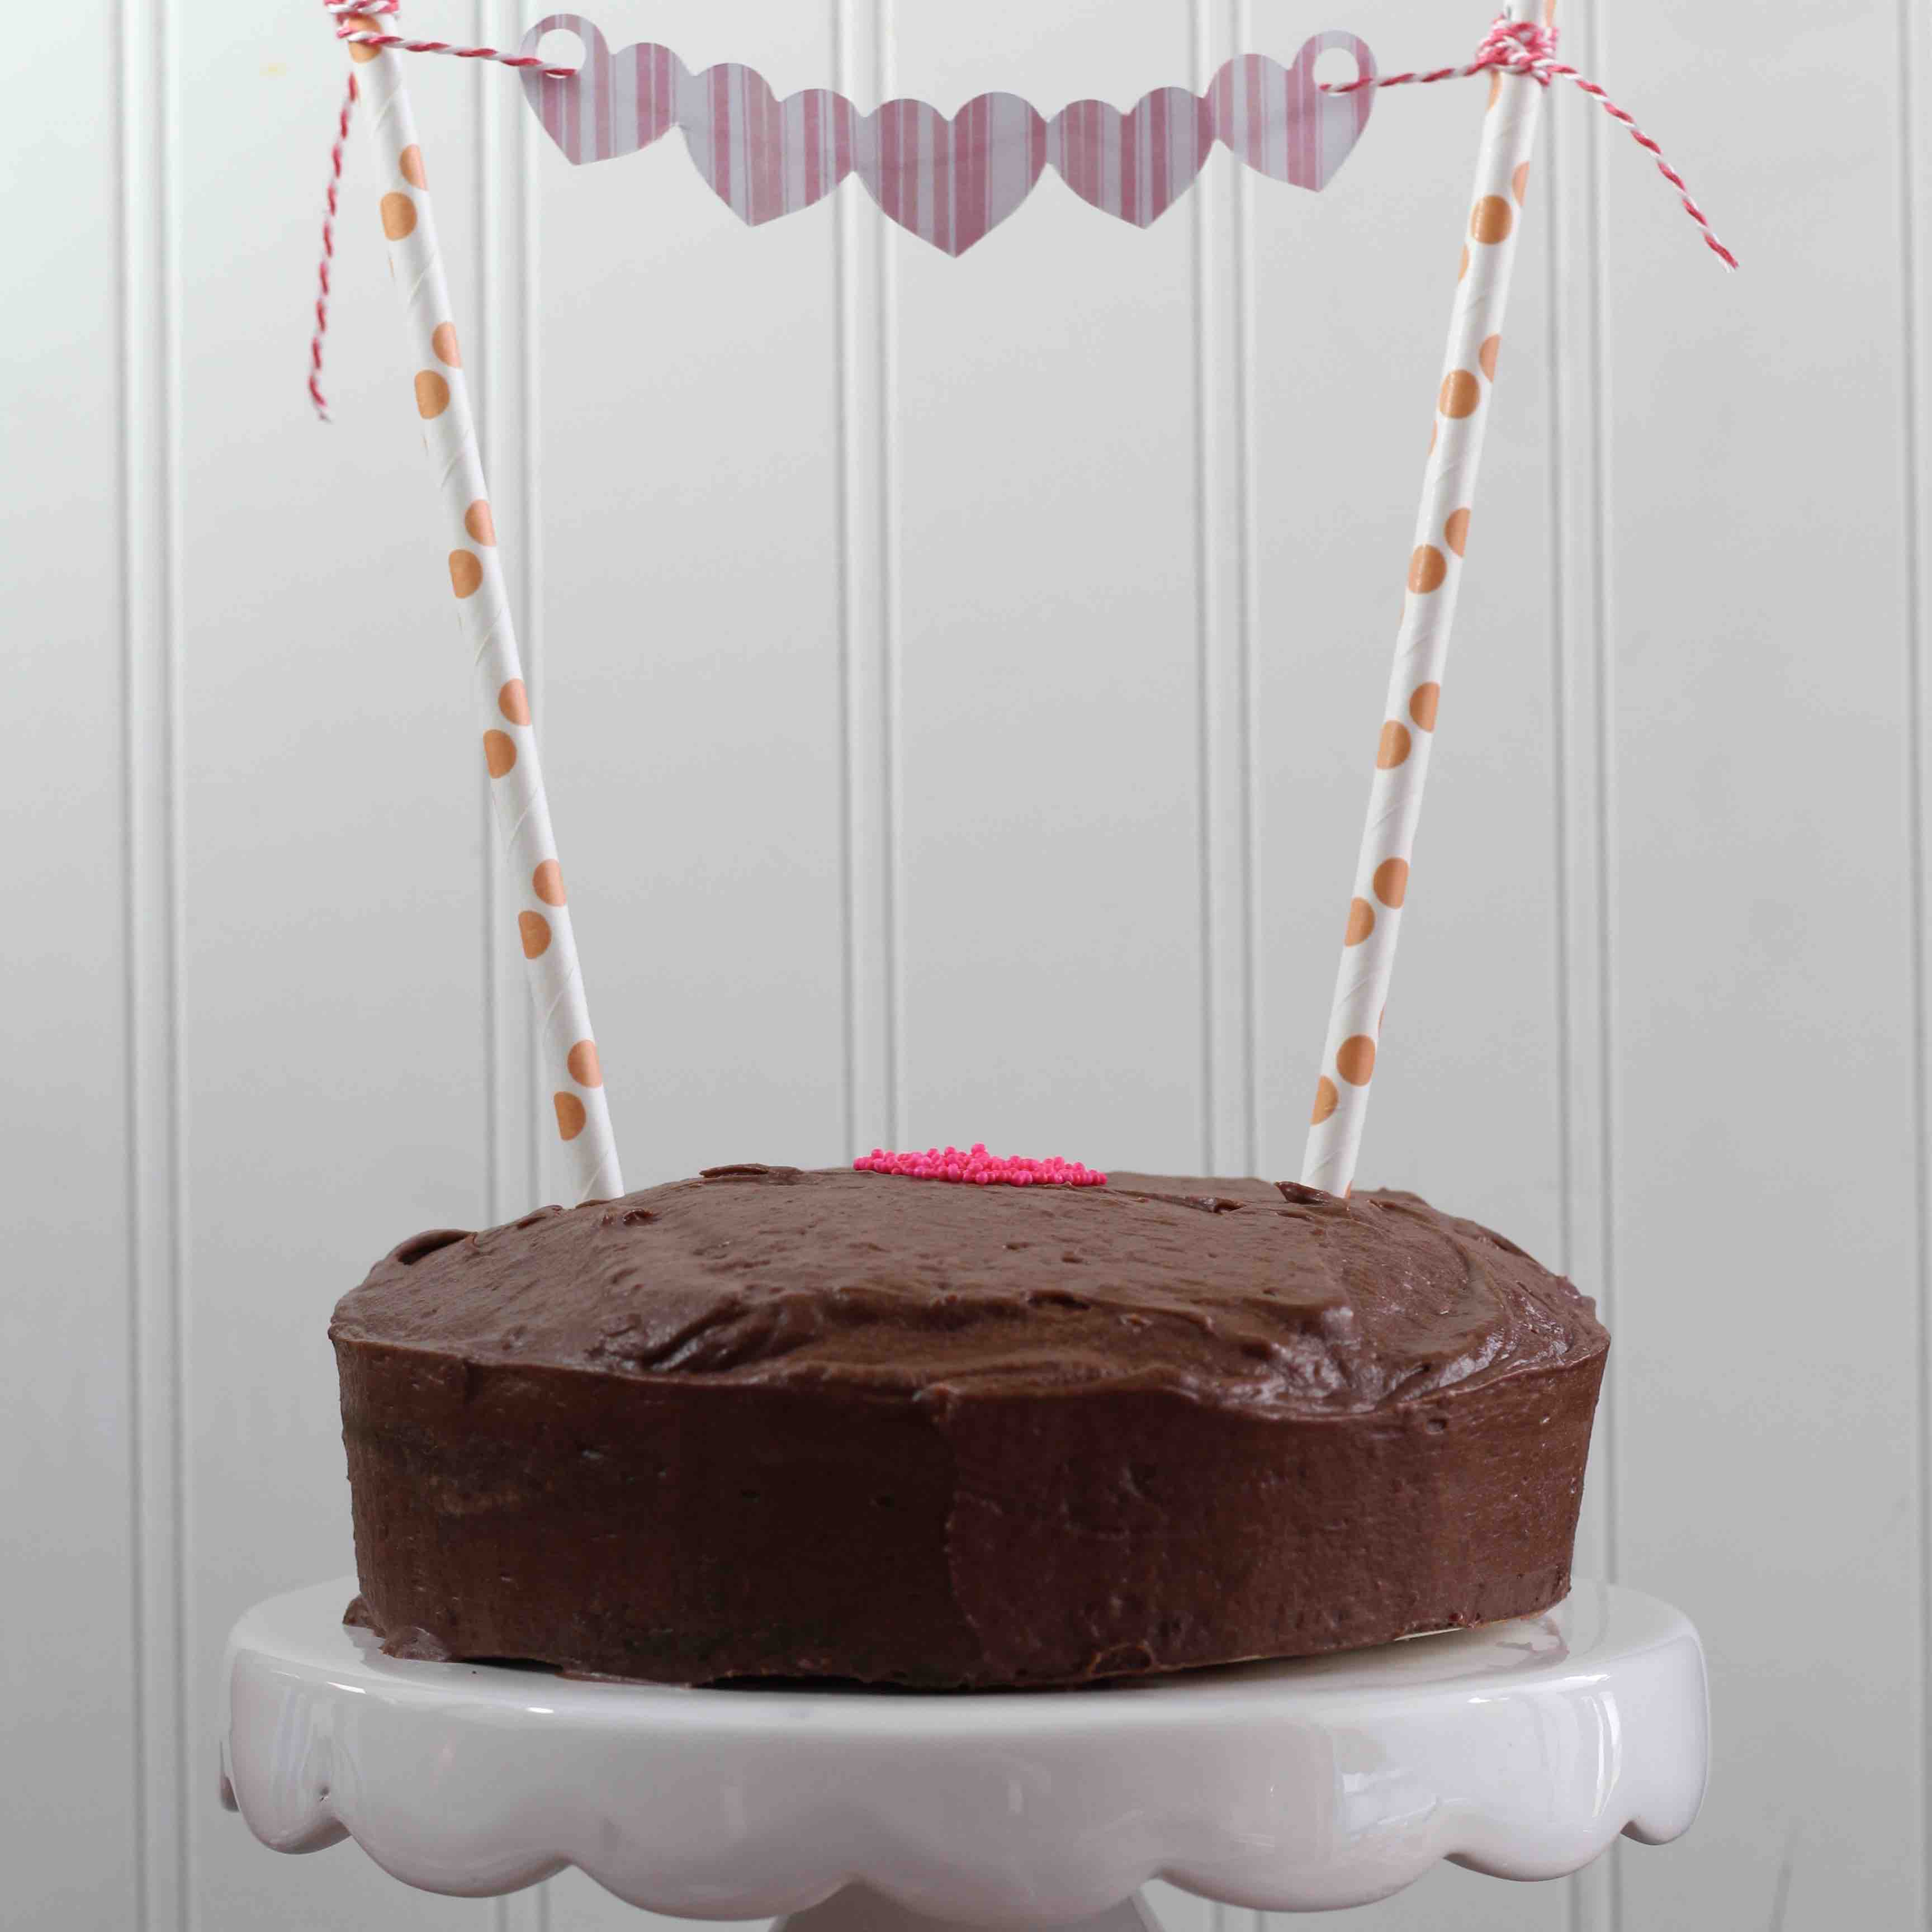 Cake Bunting: A Sweet Valentine's Day Treat